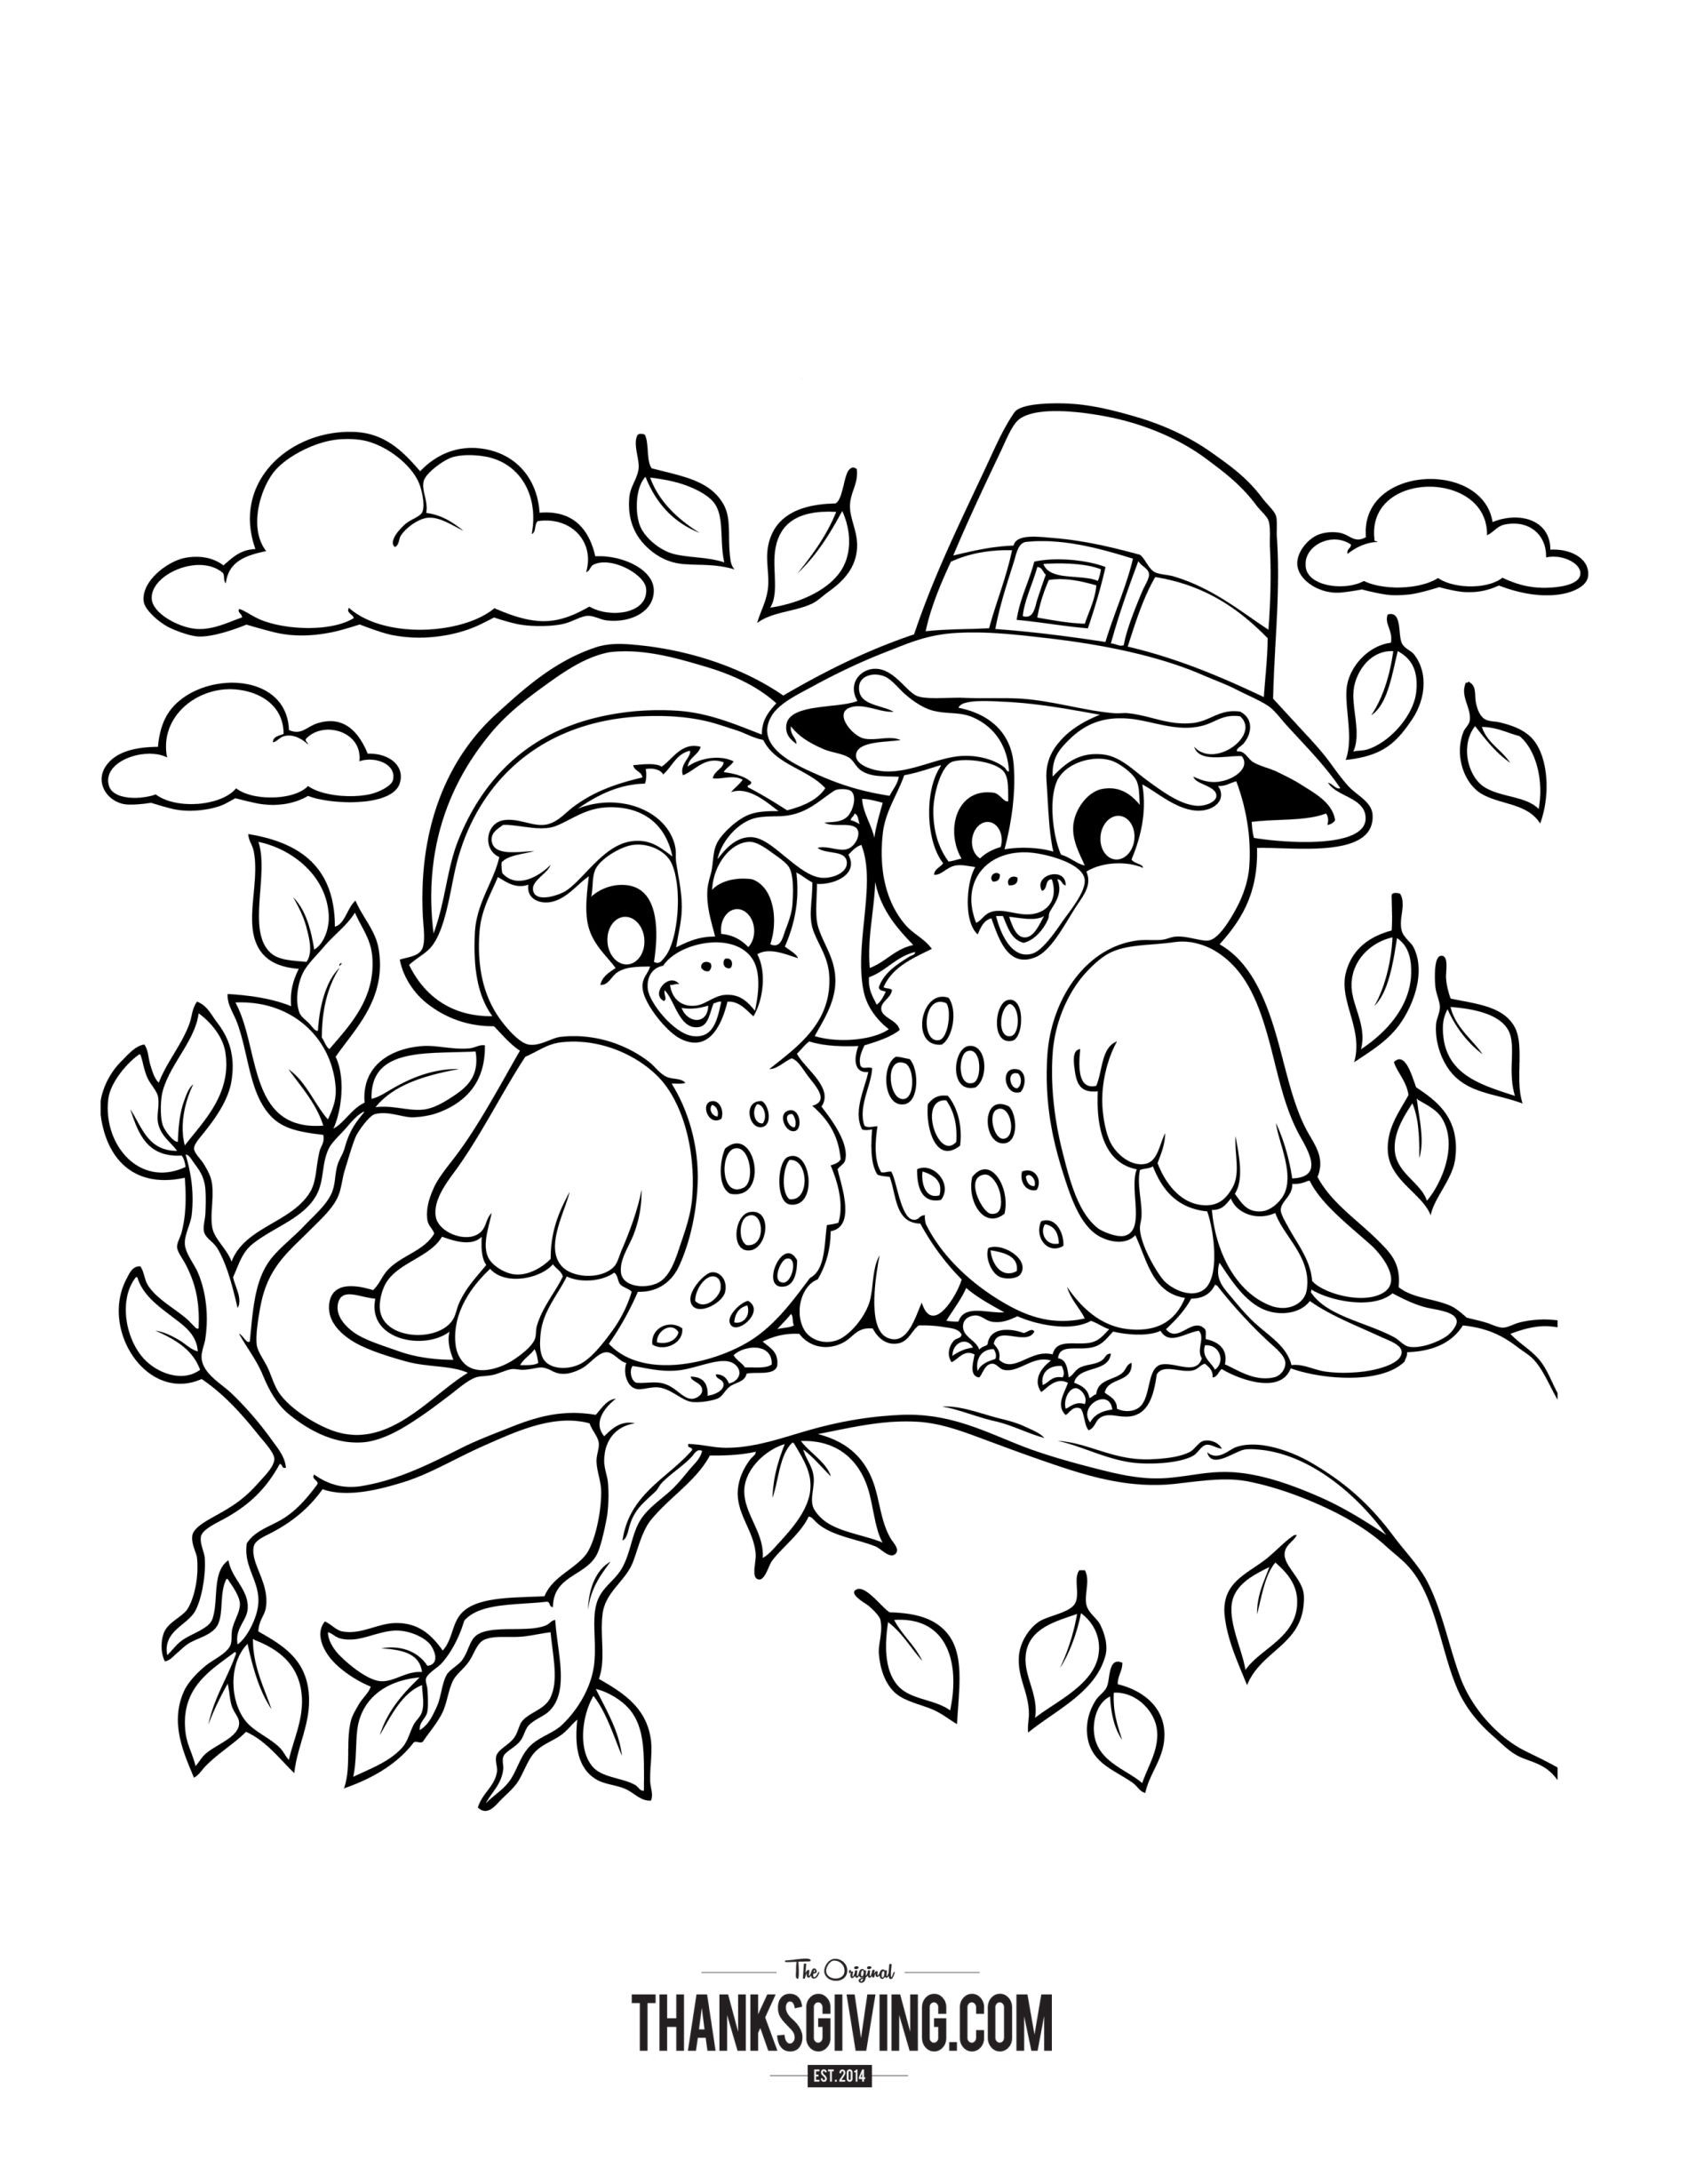 Thanksgiving Coloring Pages For Boys Coloring Pages Remarkable Thanksgiving Coloring Pages For Kids